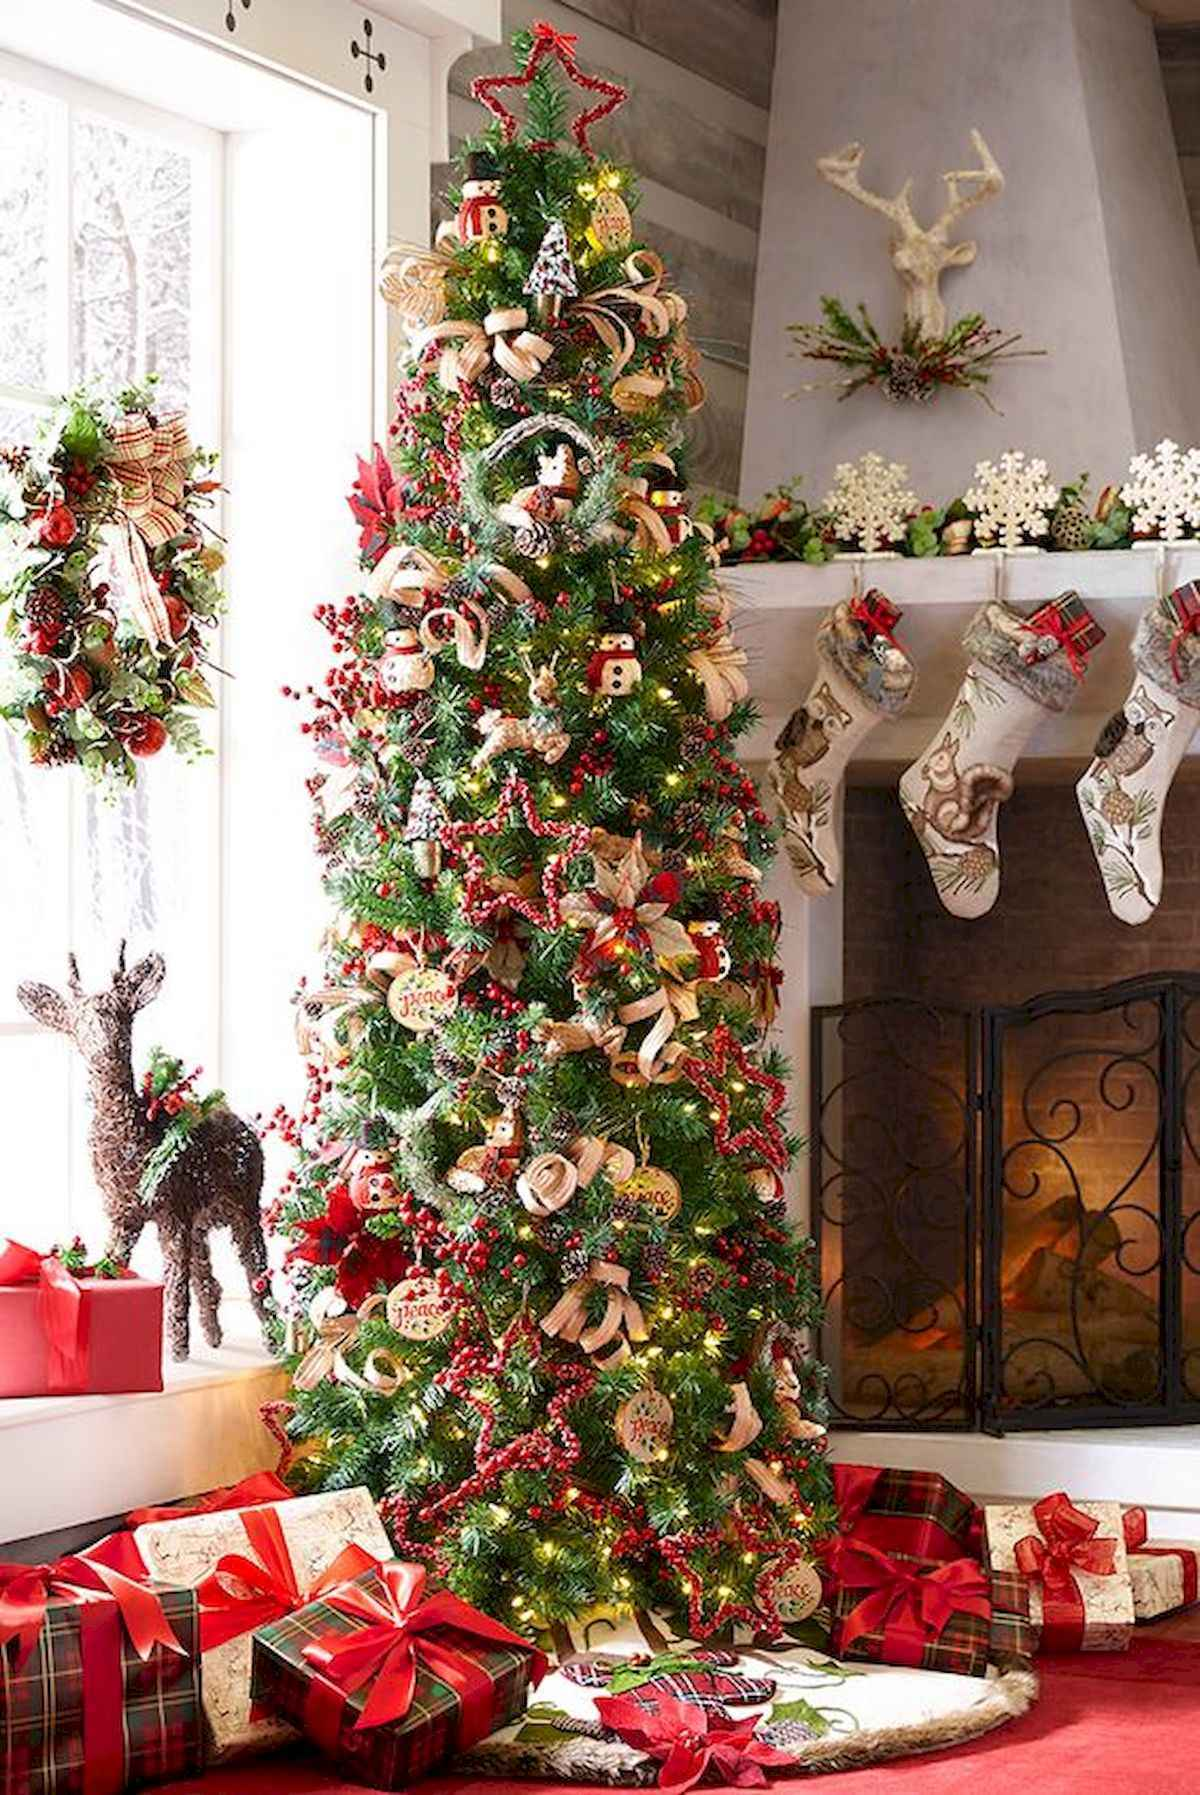 60 awesome christmas tree decorations ideas (48)